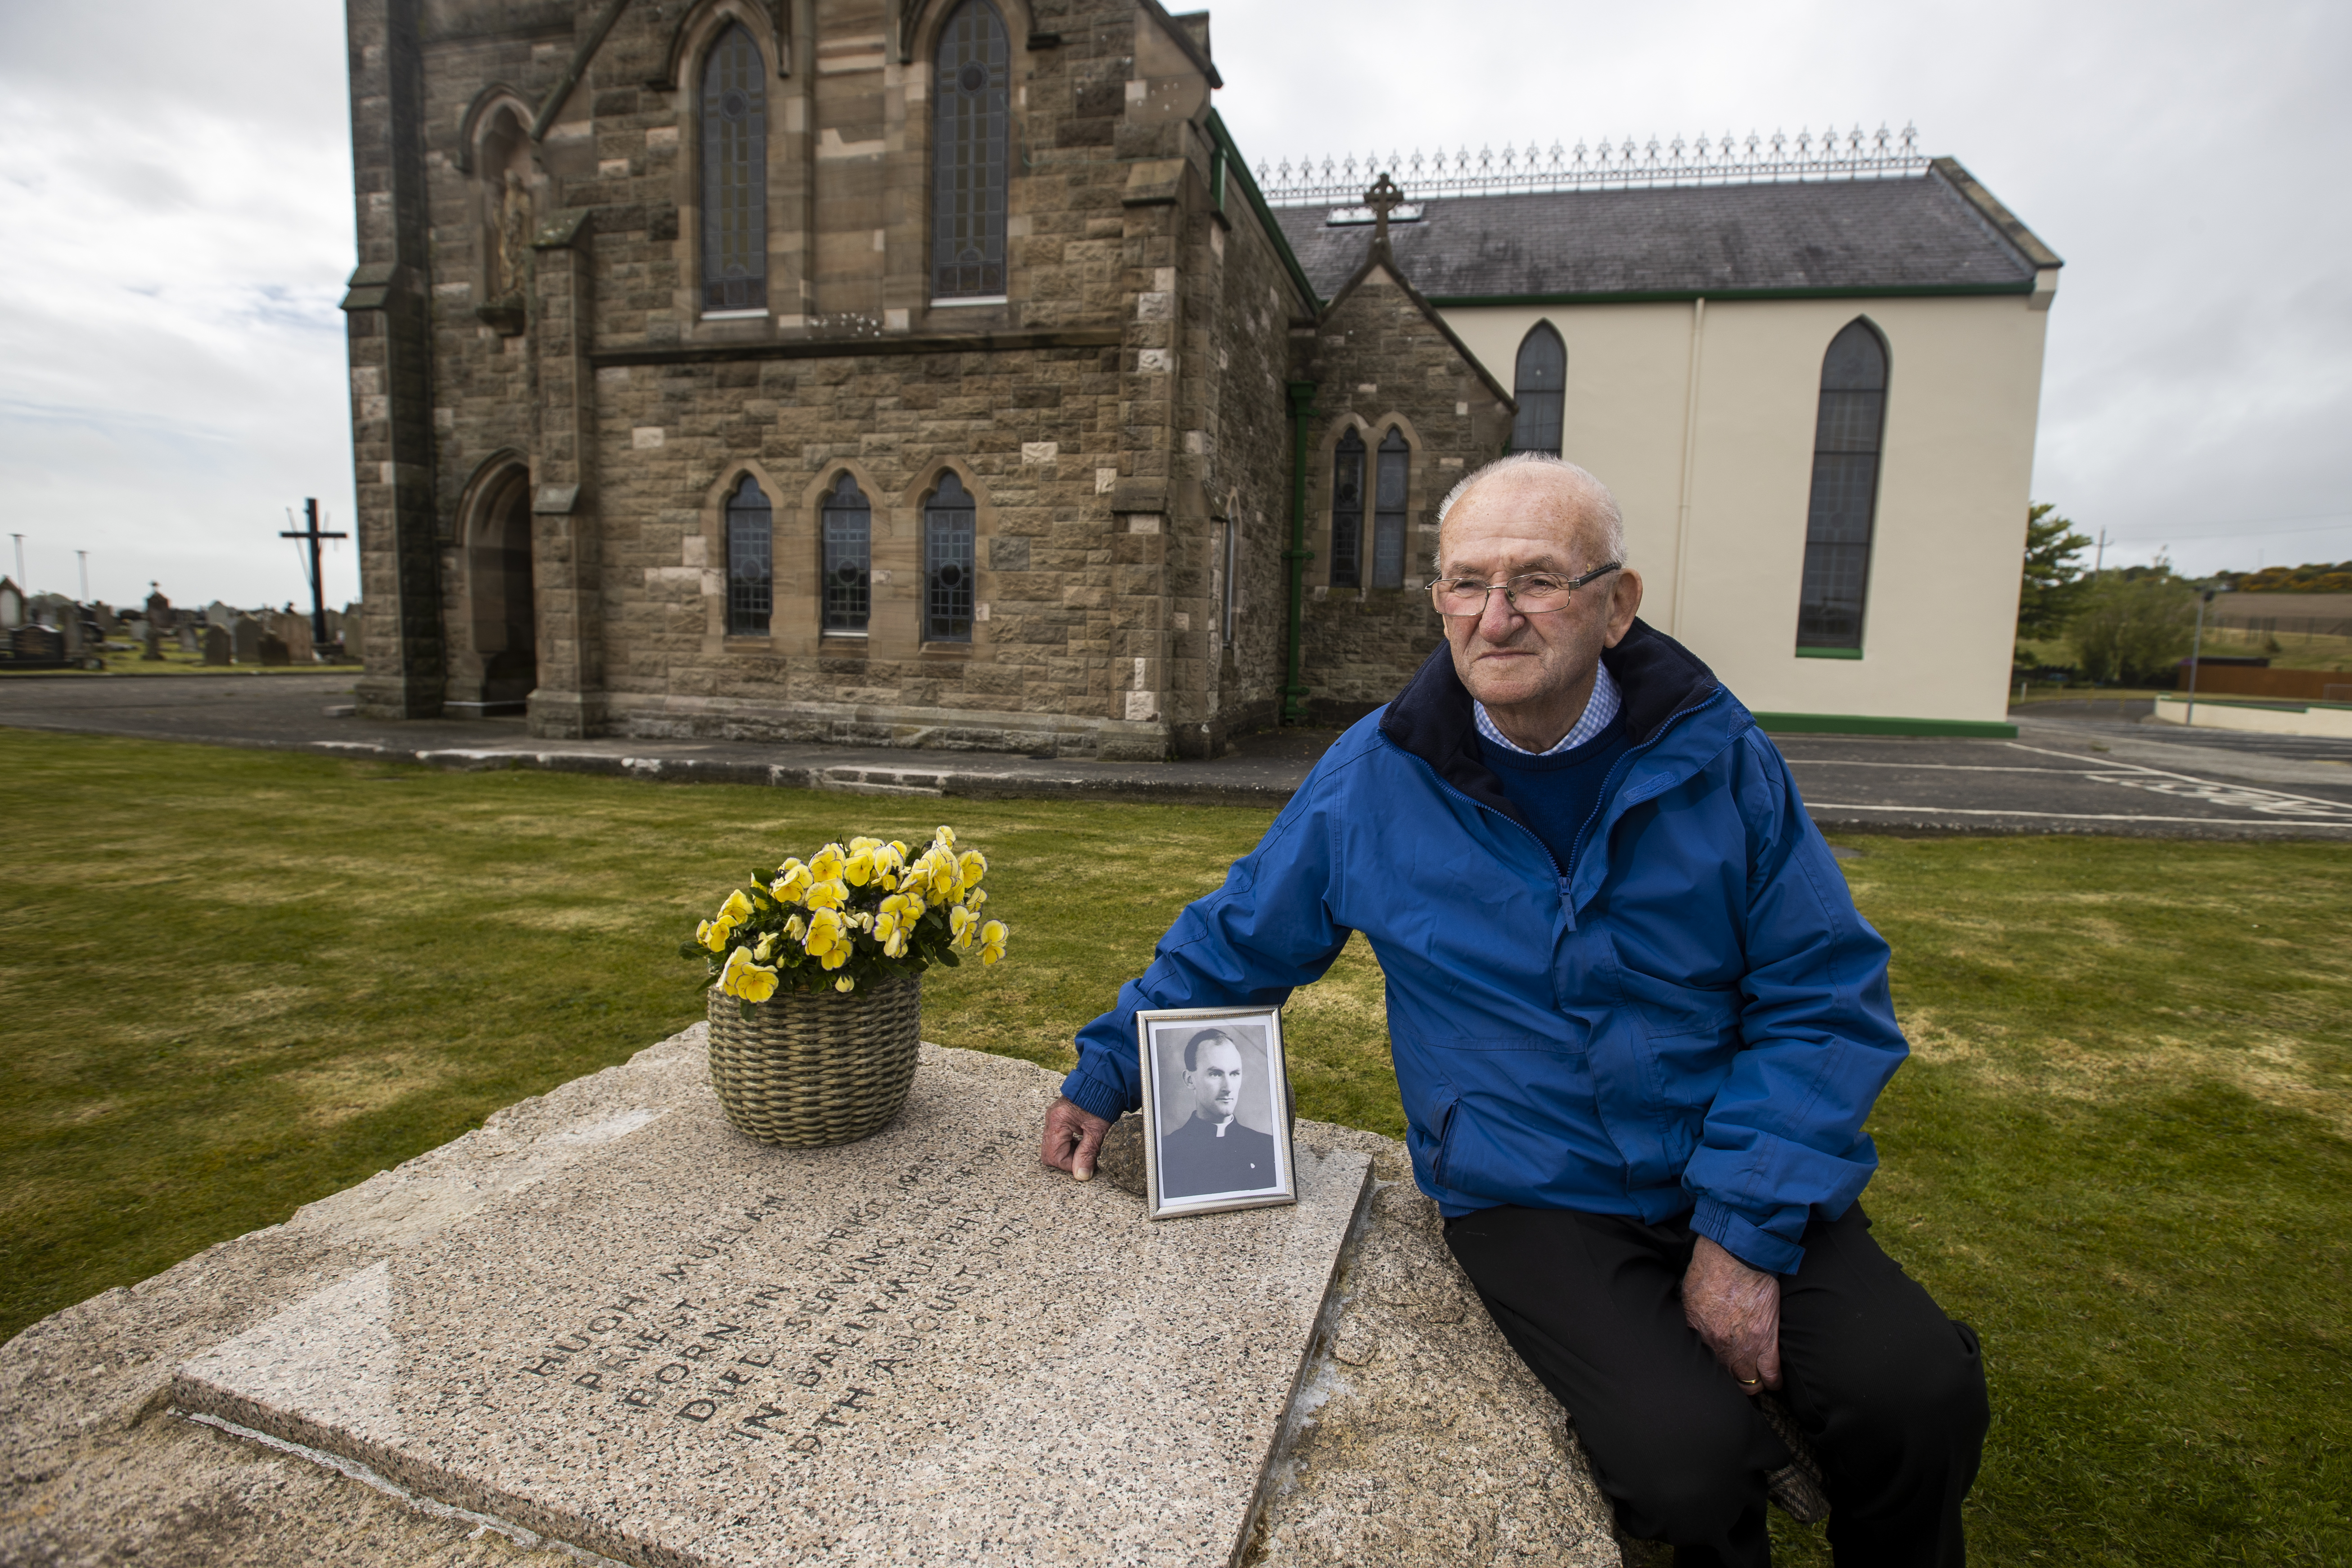 <p>Patsy Mullan, brother of Father Hugh Mullan, visit's his brother's grave at St. Patrick's Church in Portaferry, ahead of the findings tomorrow of the Ballymurphy Inquest. Picture date: Monday May 10 2021.</p>